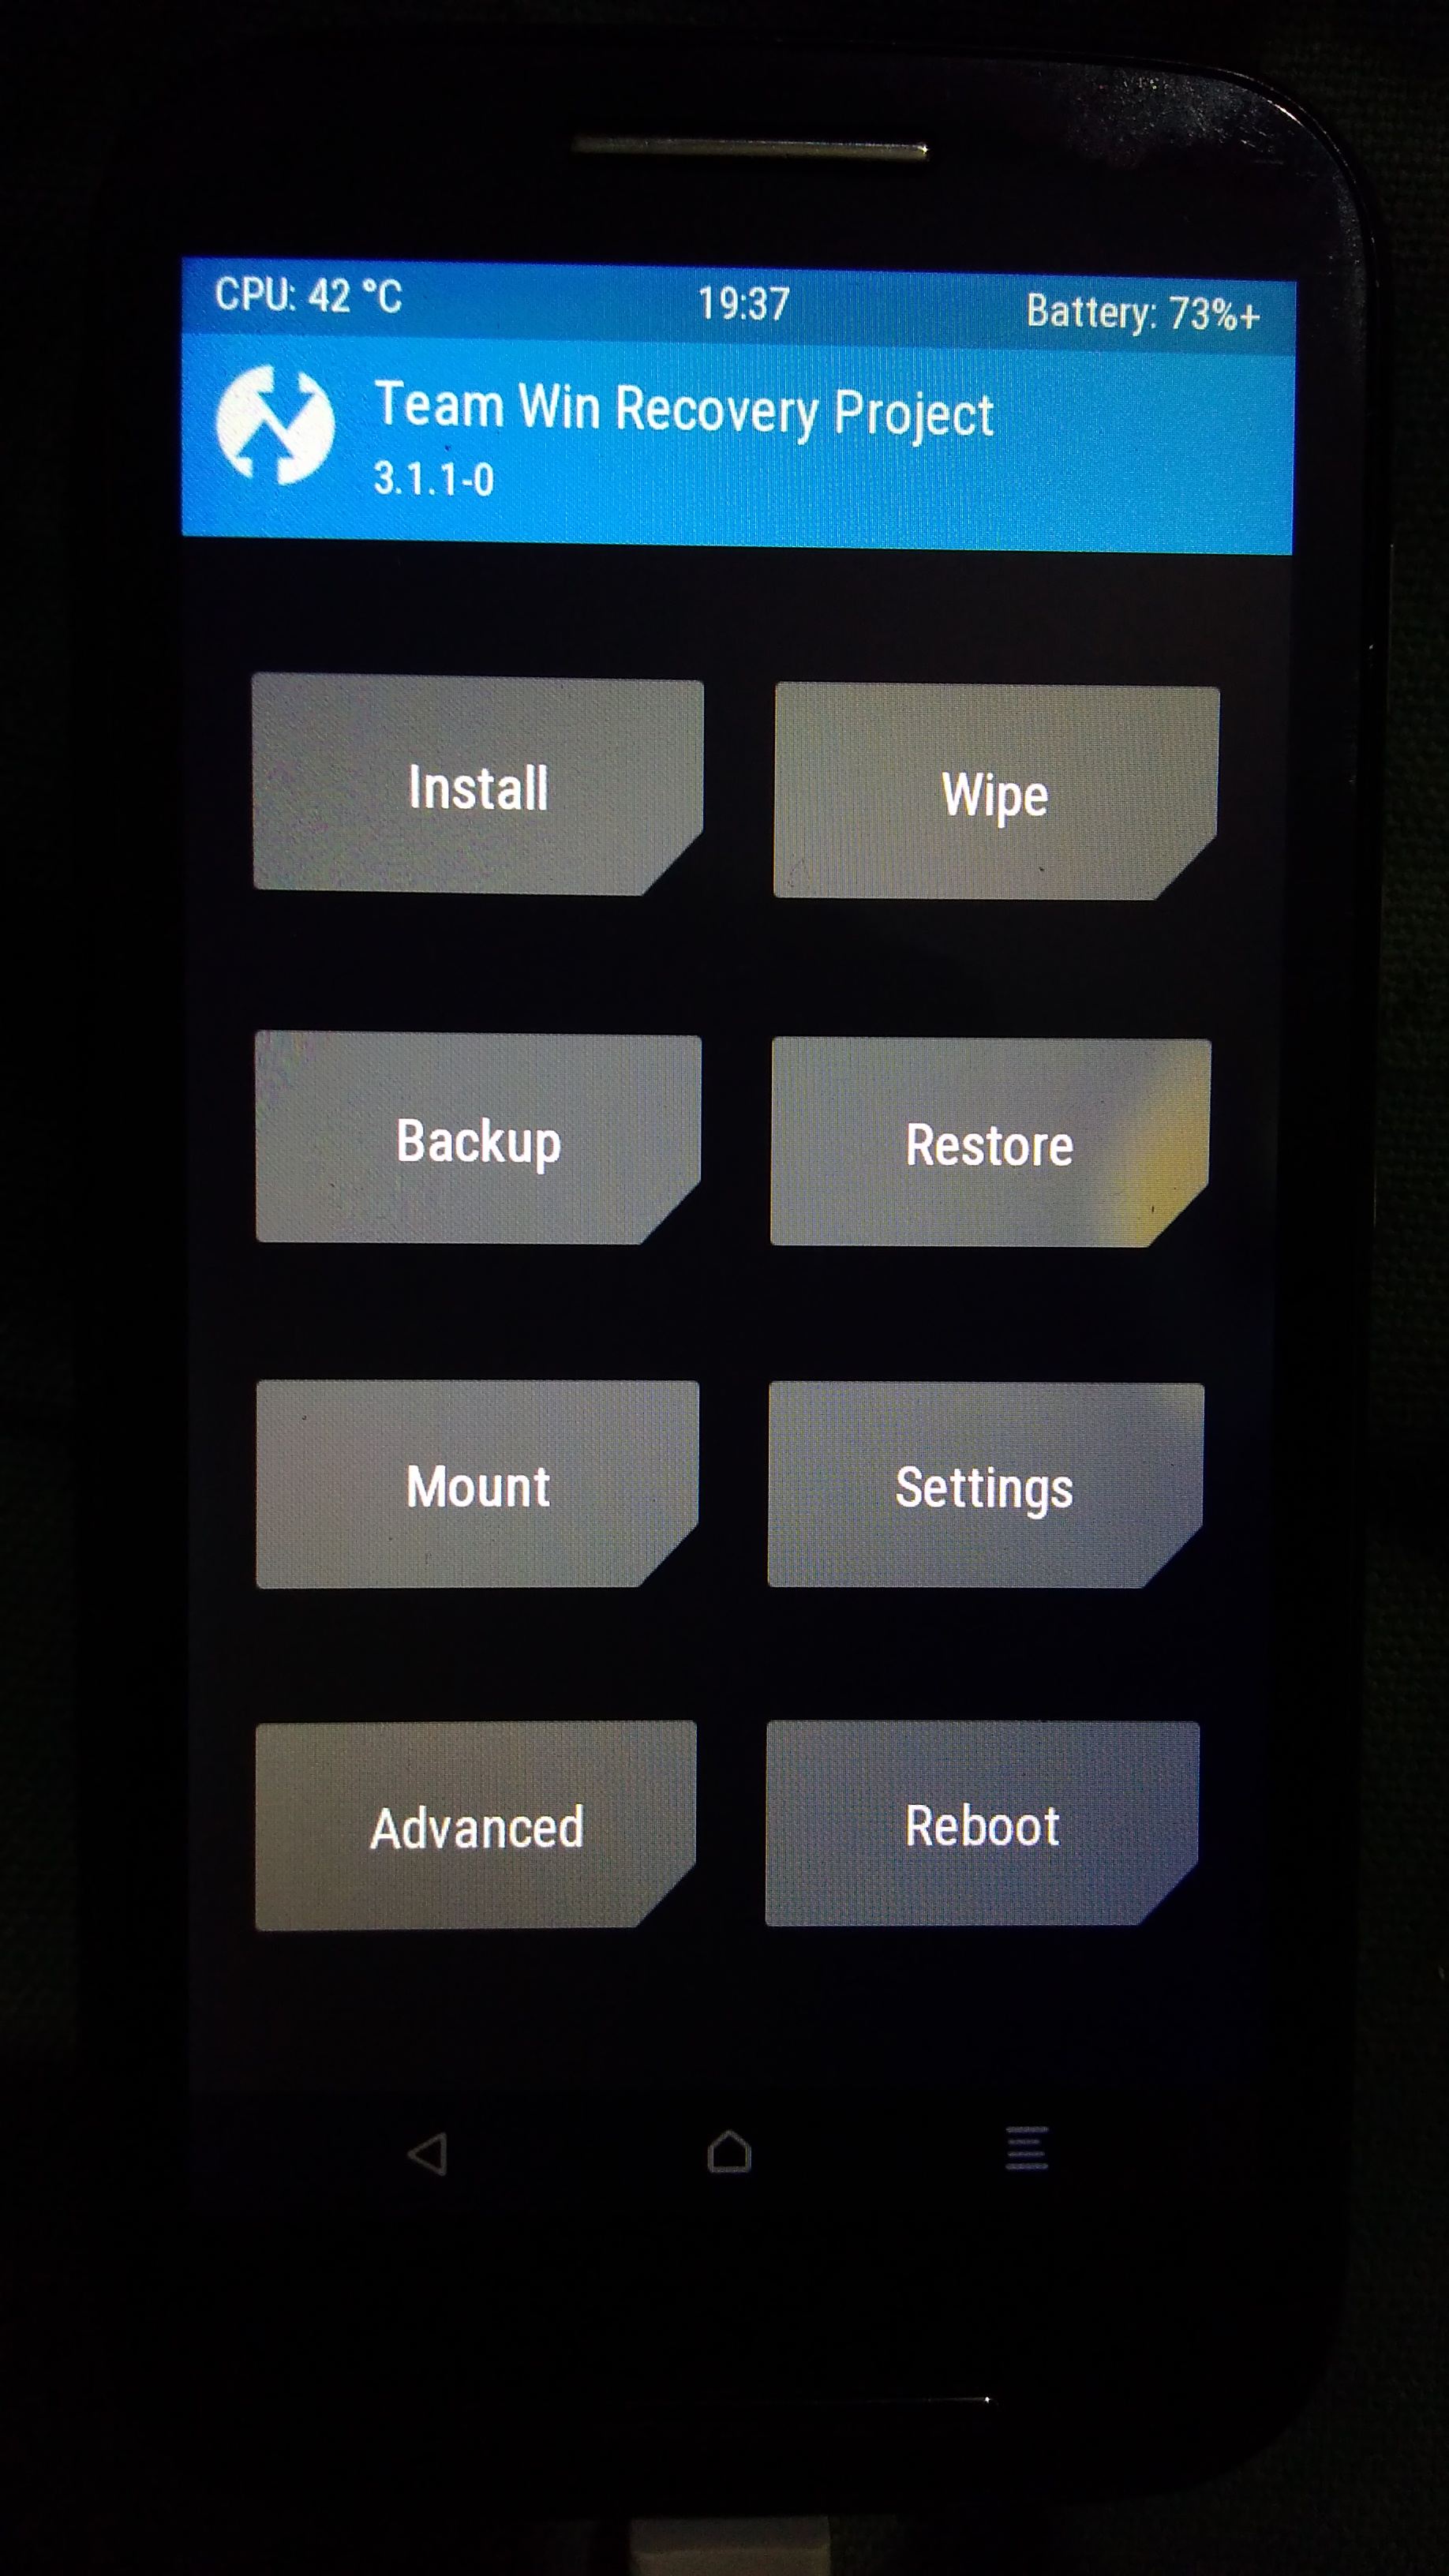 TWRP 3 0 2-0 build to 3 1 1-0 build time miscalculation on so many